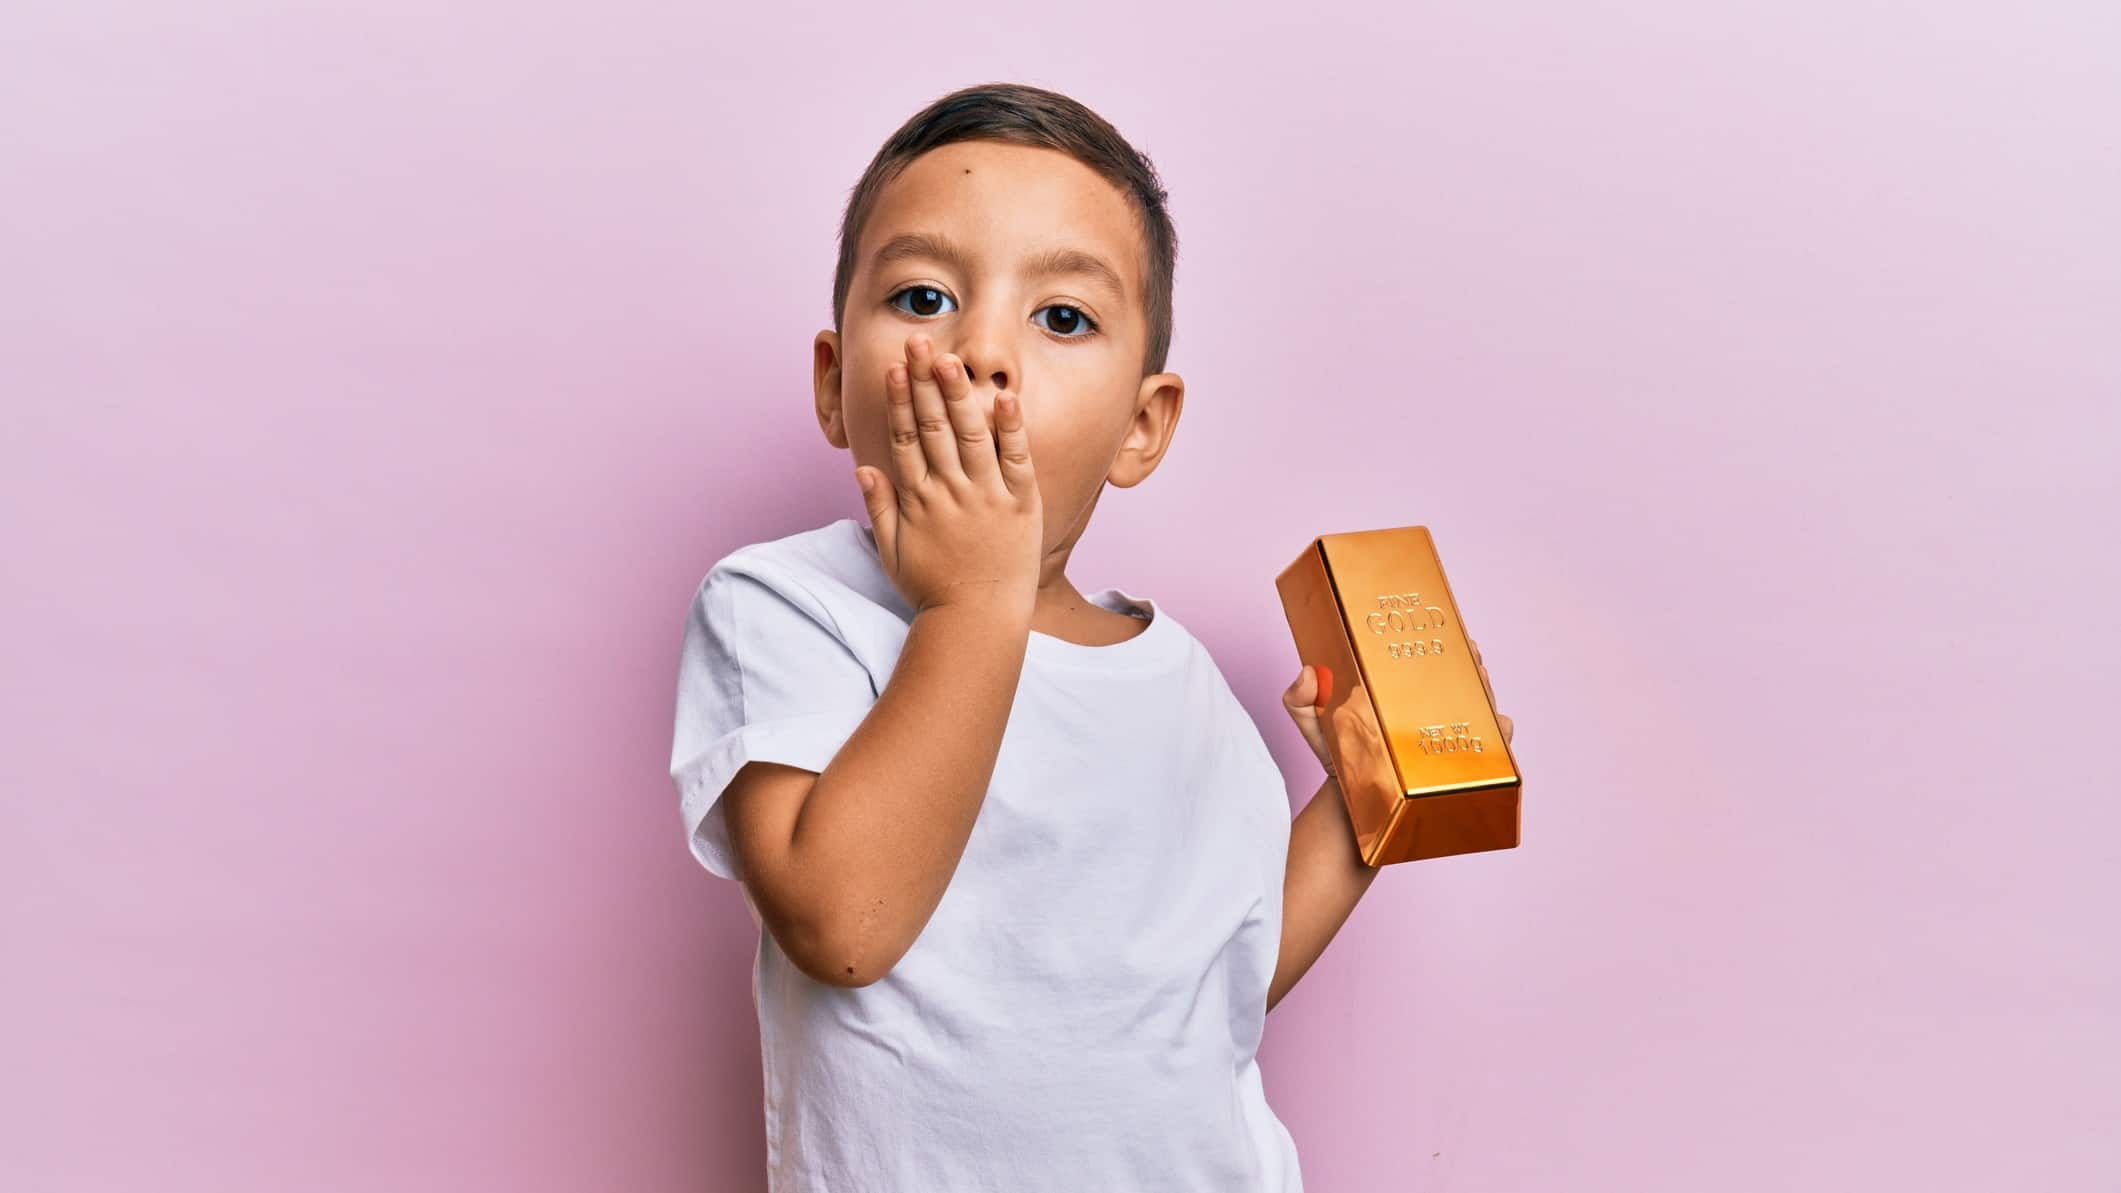 Northern Star share price child holding gold bar looking concerned